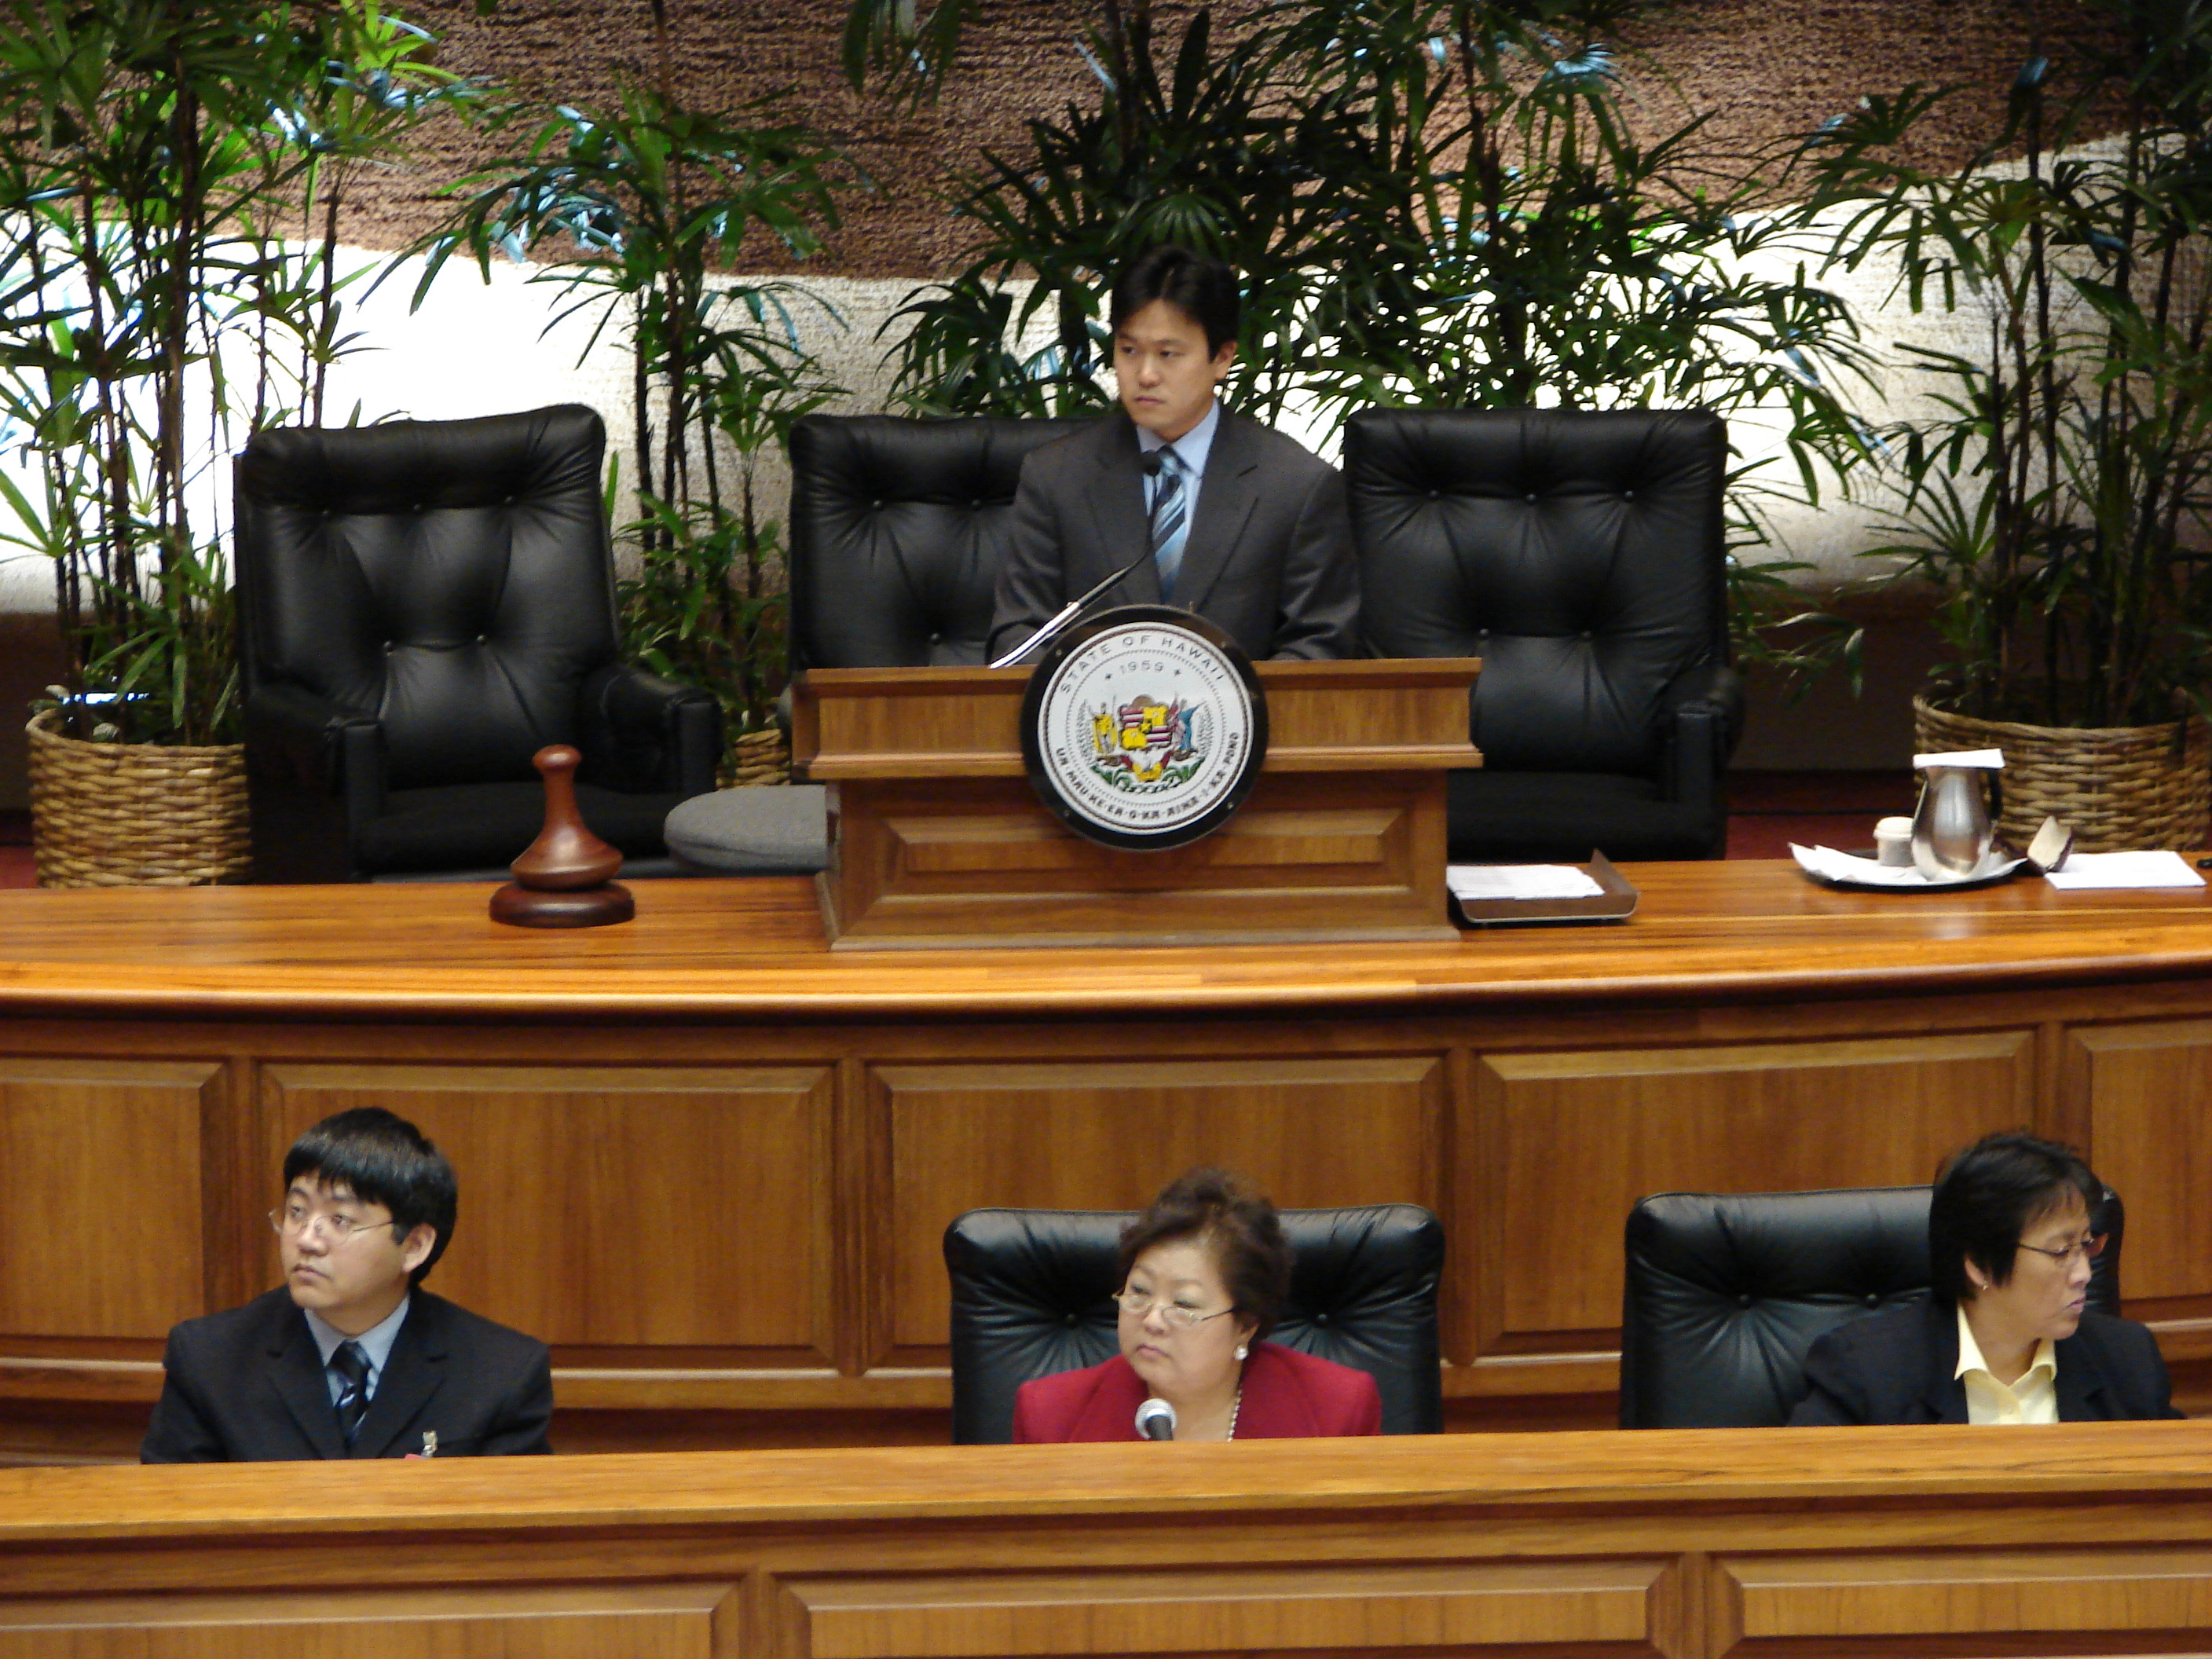 Rep. Jon Riki Karamatsu presiding over the House floor session as Vice Speaker of the House during the 2007 Legislative Session.